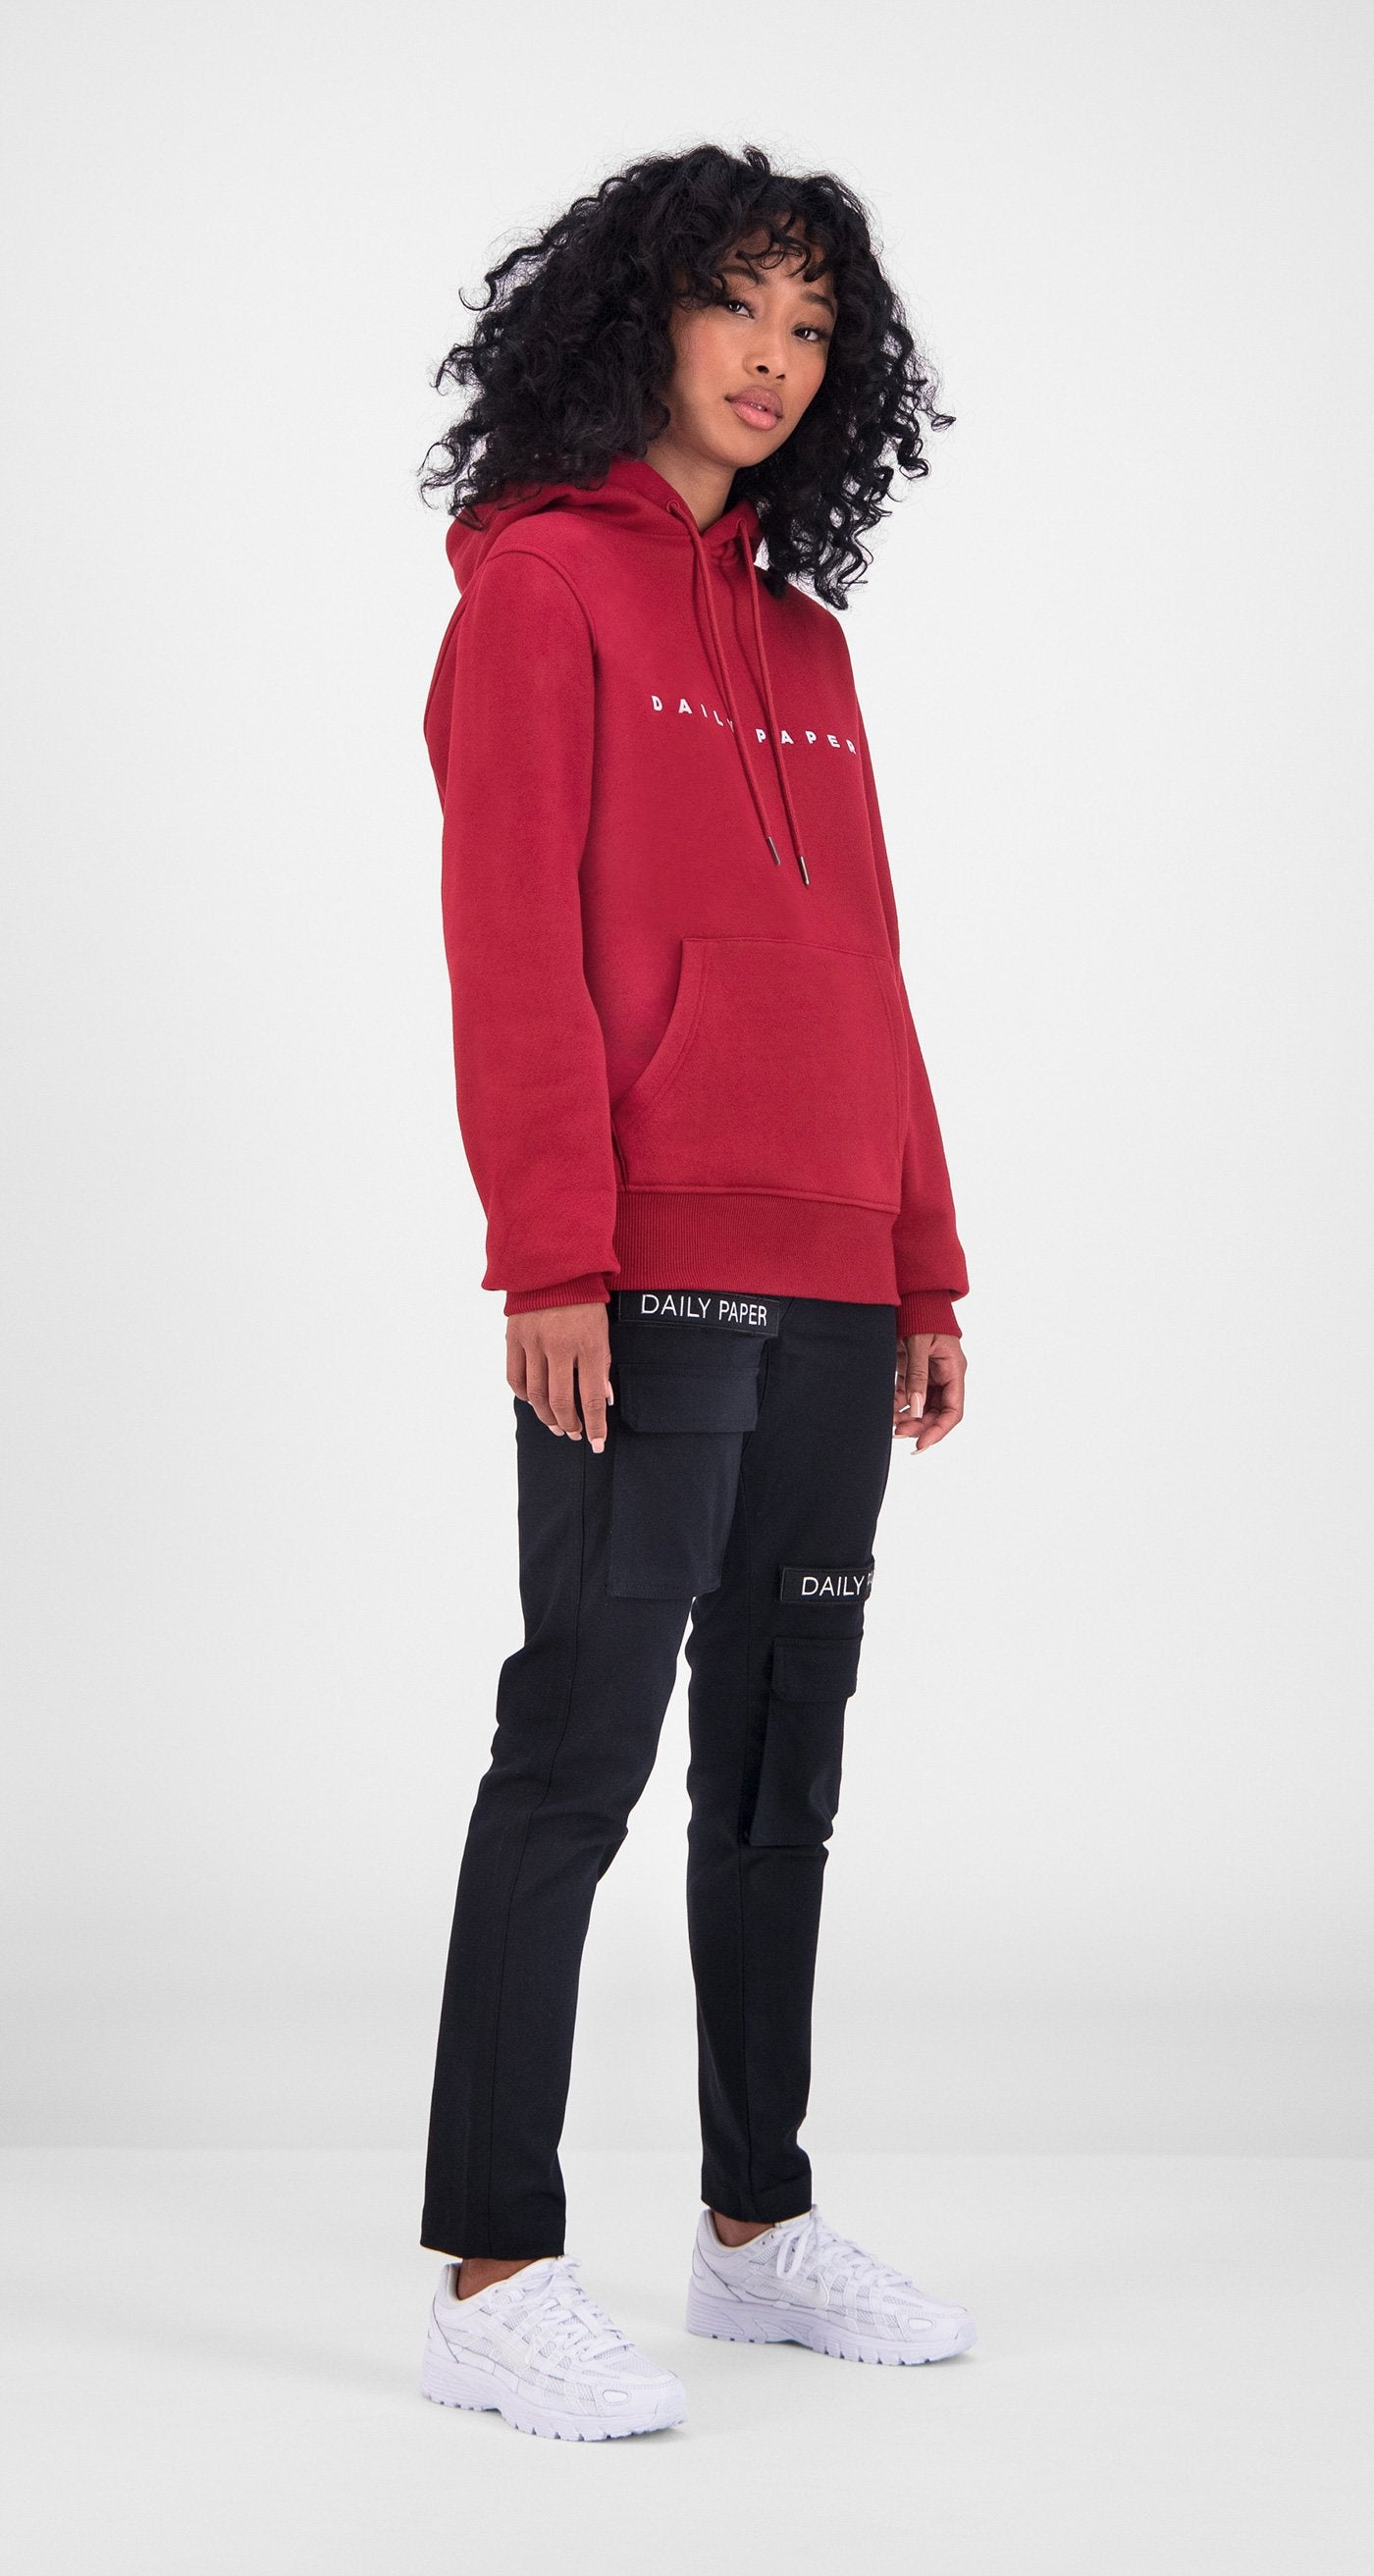 Daily Paper - Red Alias Hoody Women